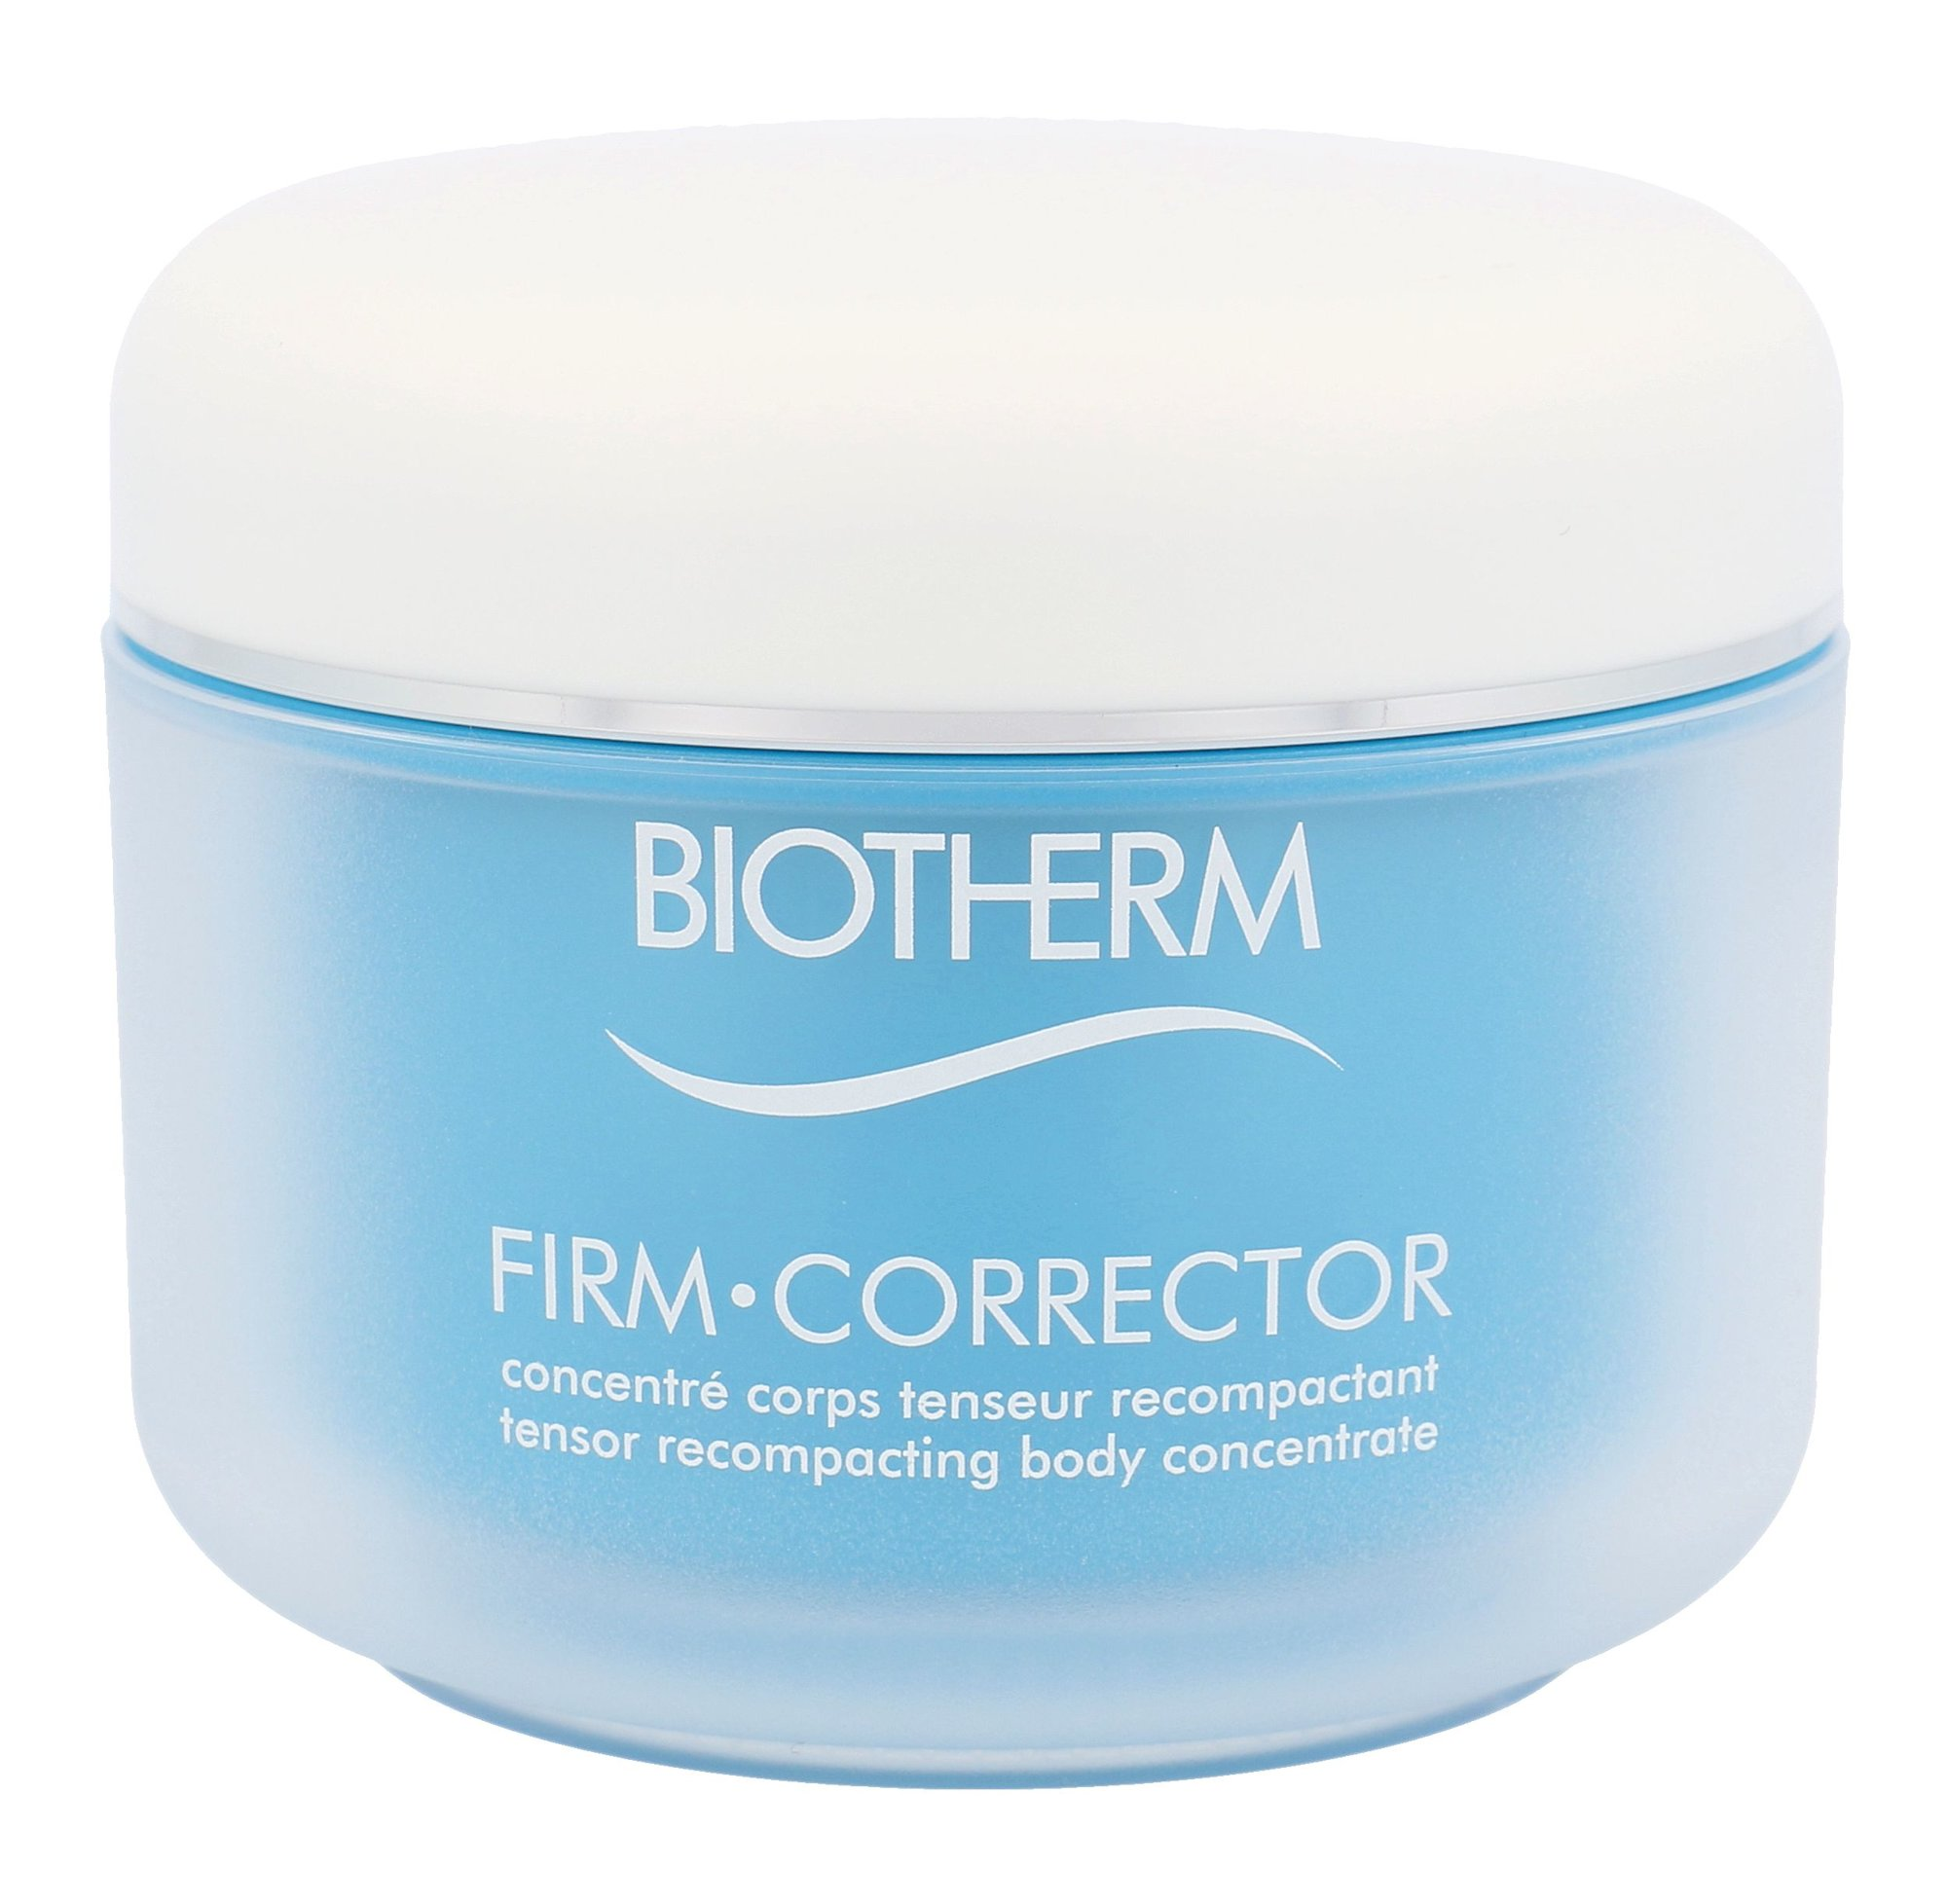 Biotherm Firm.Corrector Cosmetic 200ml